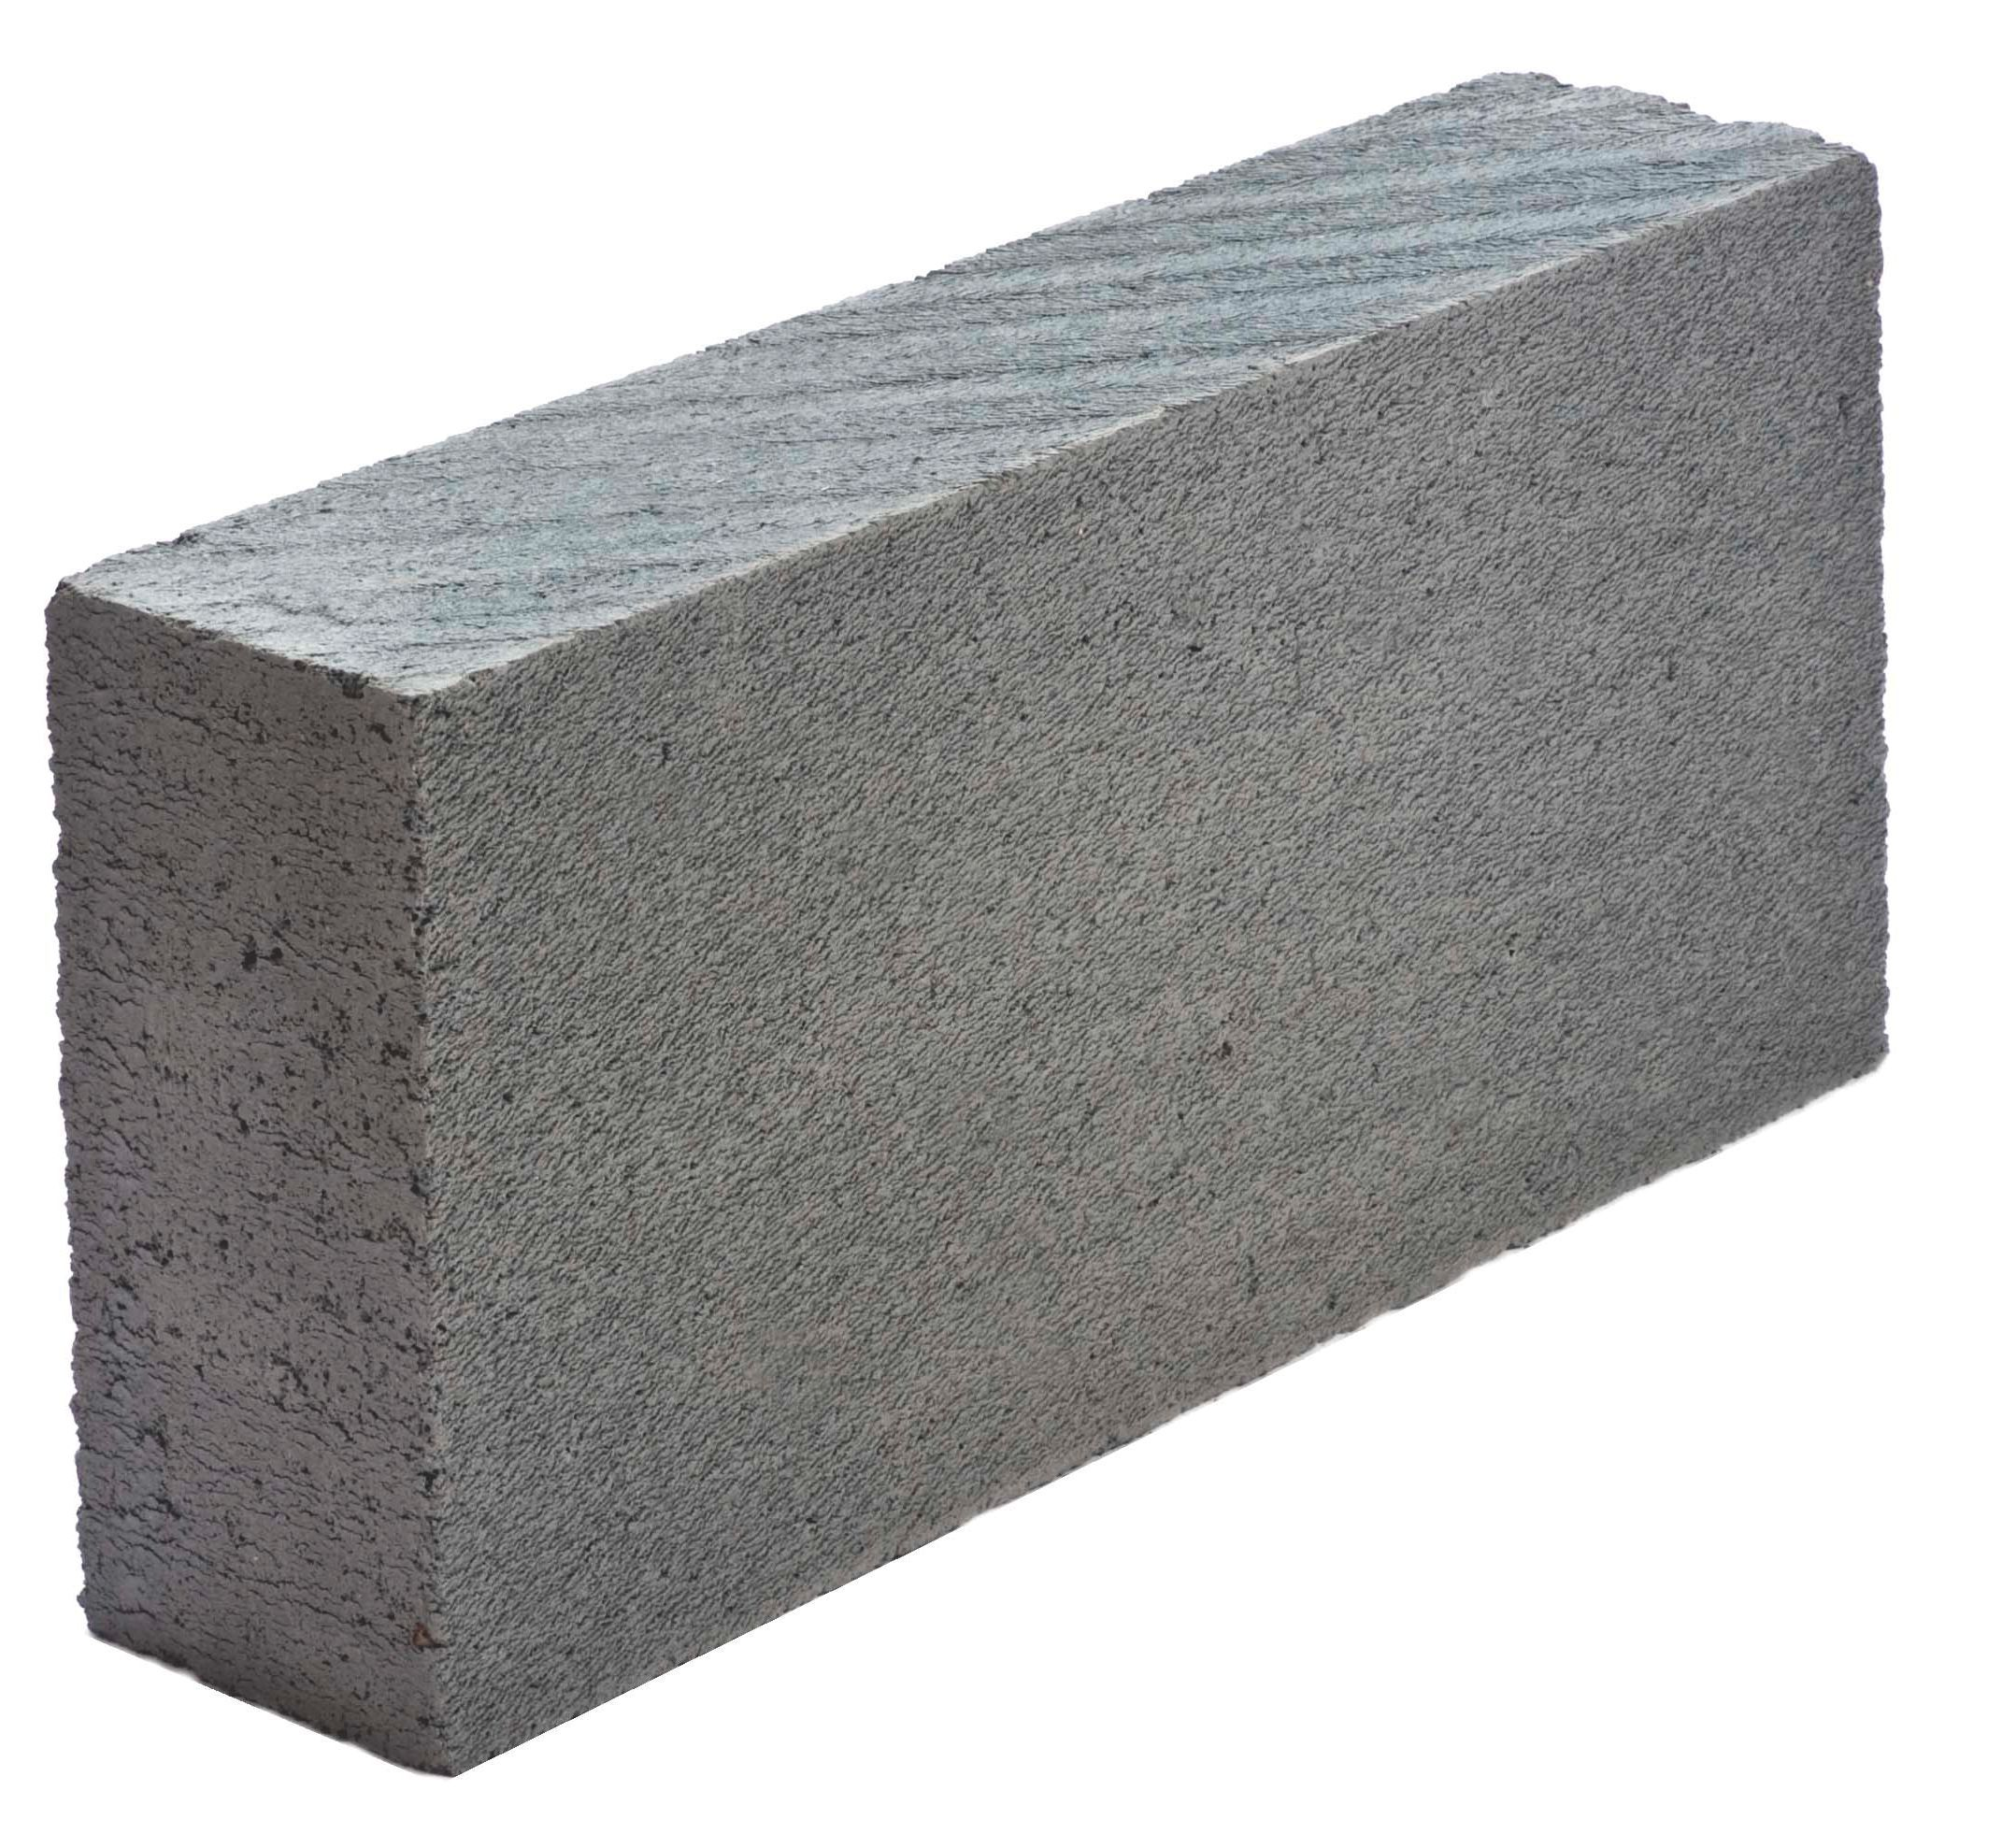 Celcon Grey Aircrete Aerated Block H 215mm W 100mm L